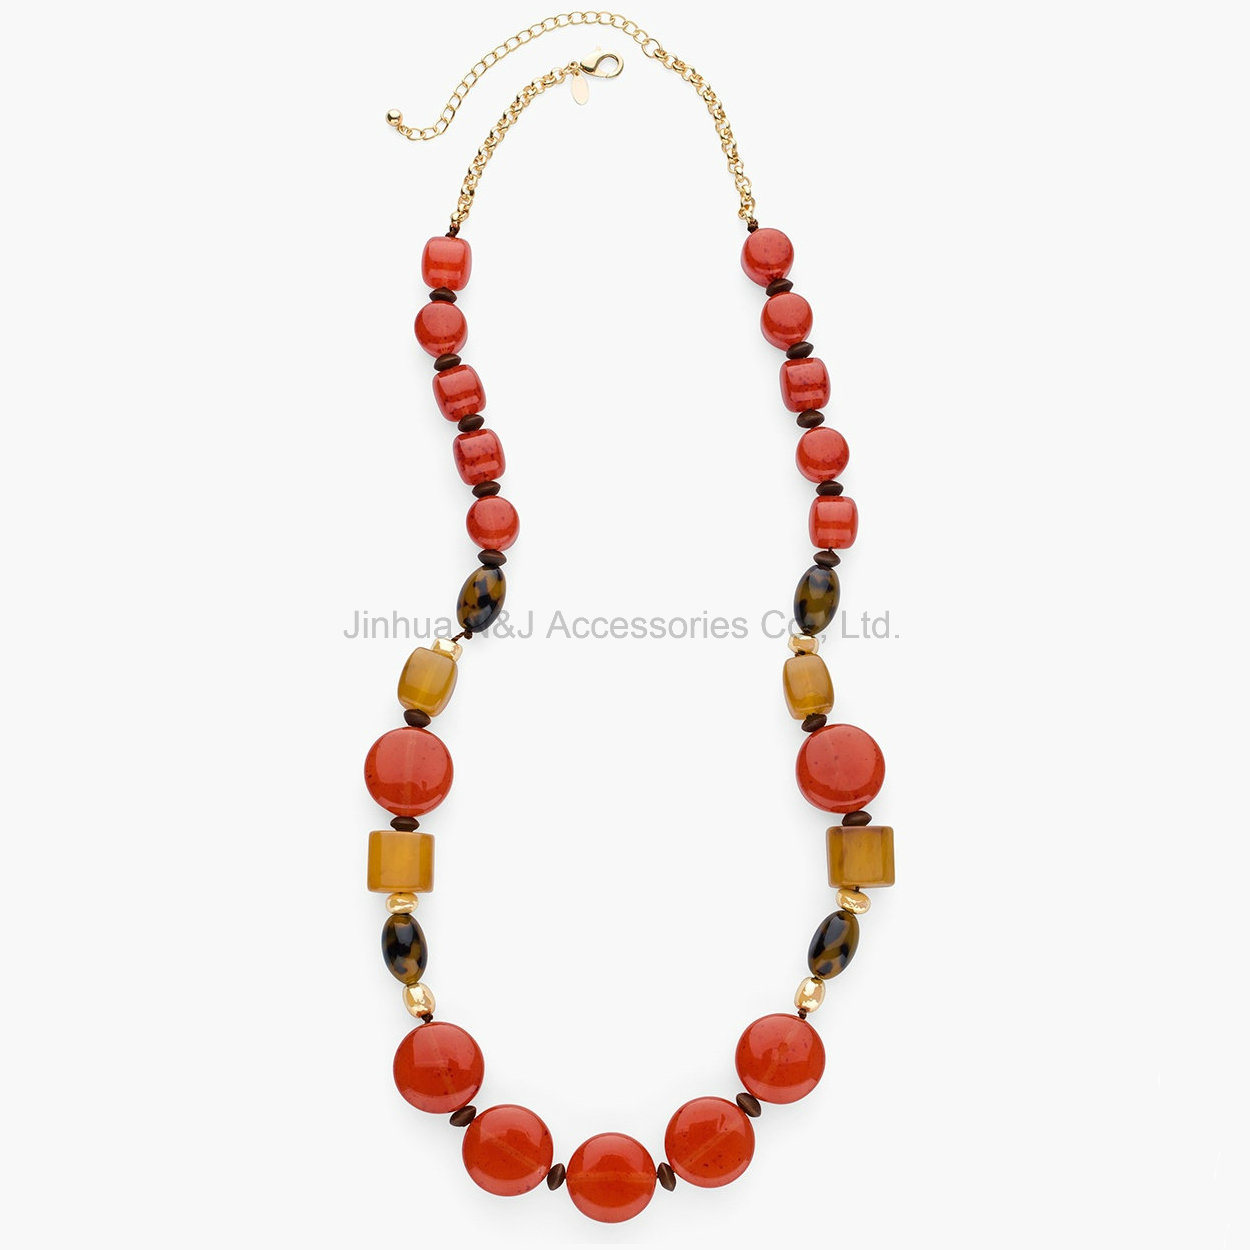 Colourful Beads Choker Vintage Pendants Statement Necklaces & Pendants Long Necklace Women Jewelry